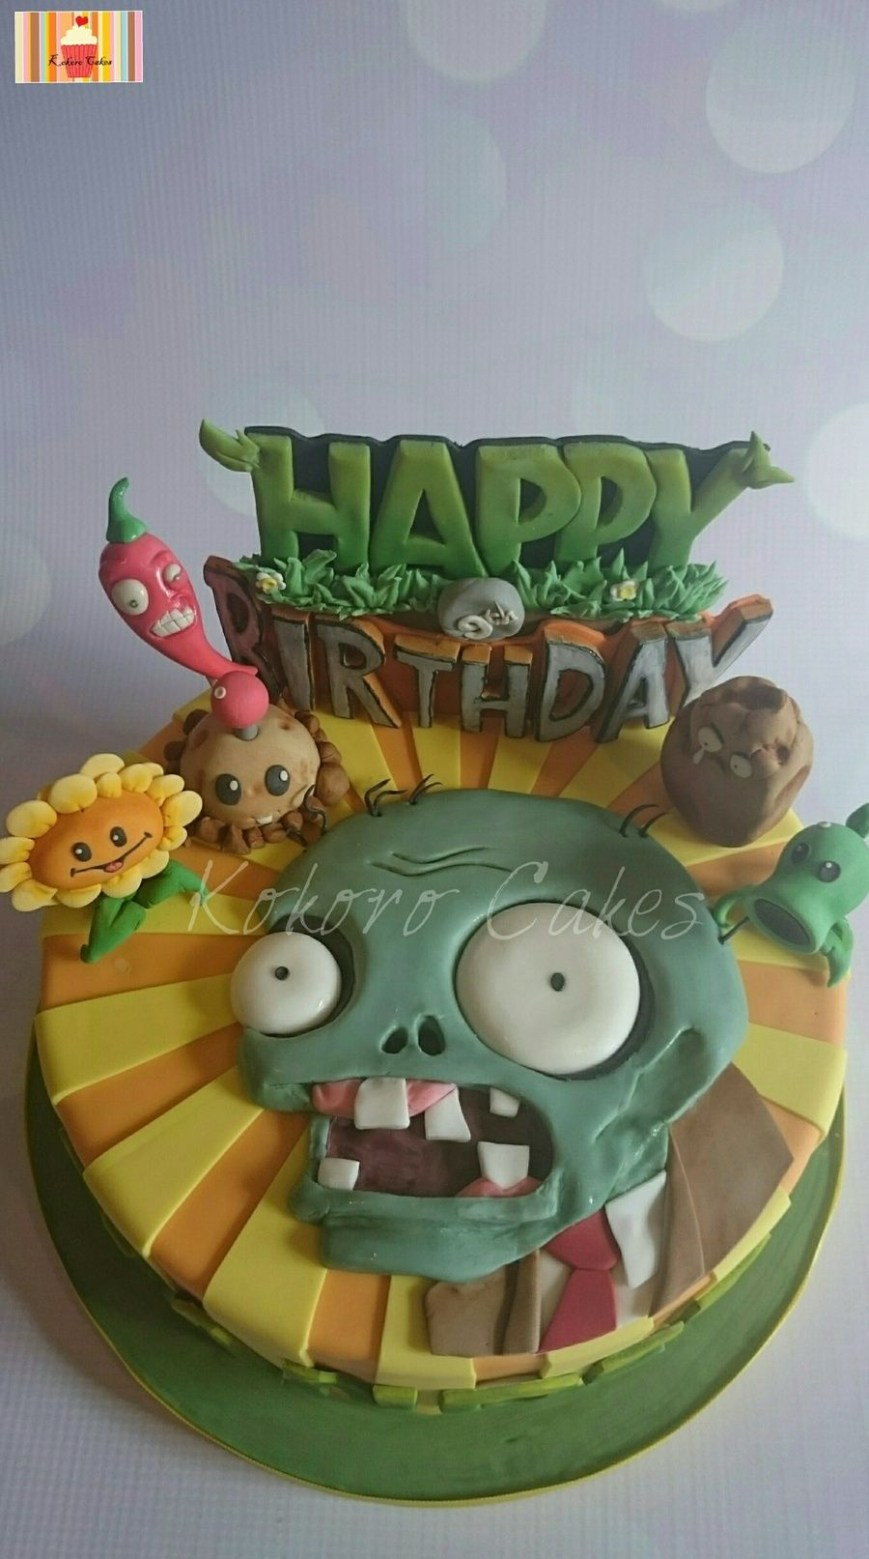 Zombie Birthday Cake Plants Vs Zombies Themed Cake Cakescupcakes And Cookies I Love